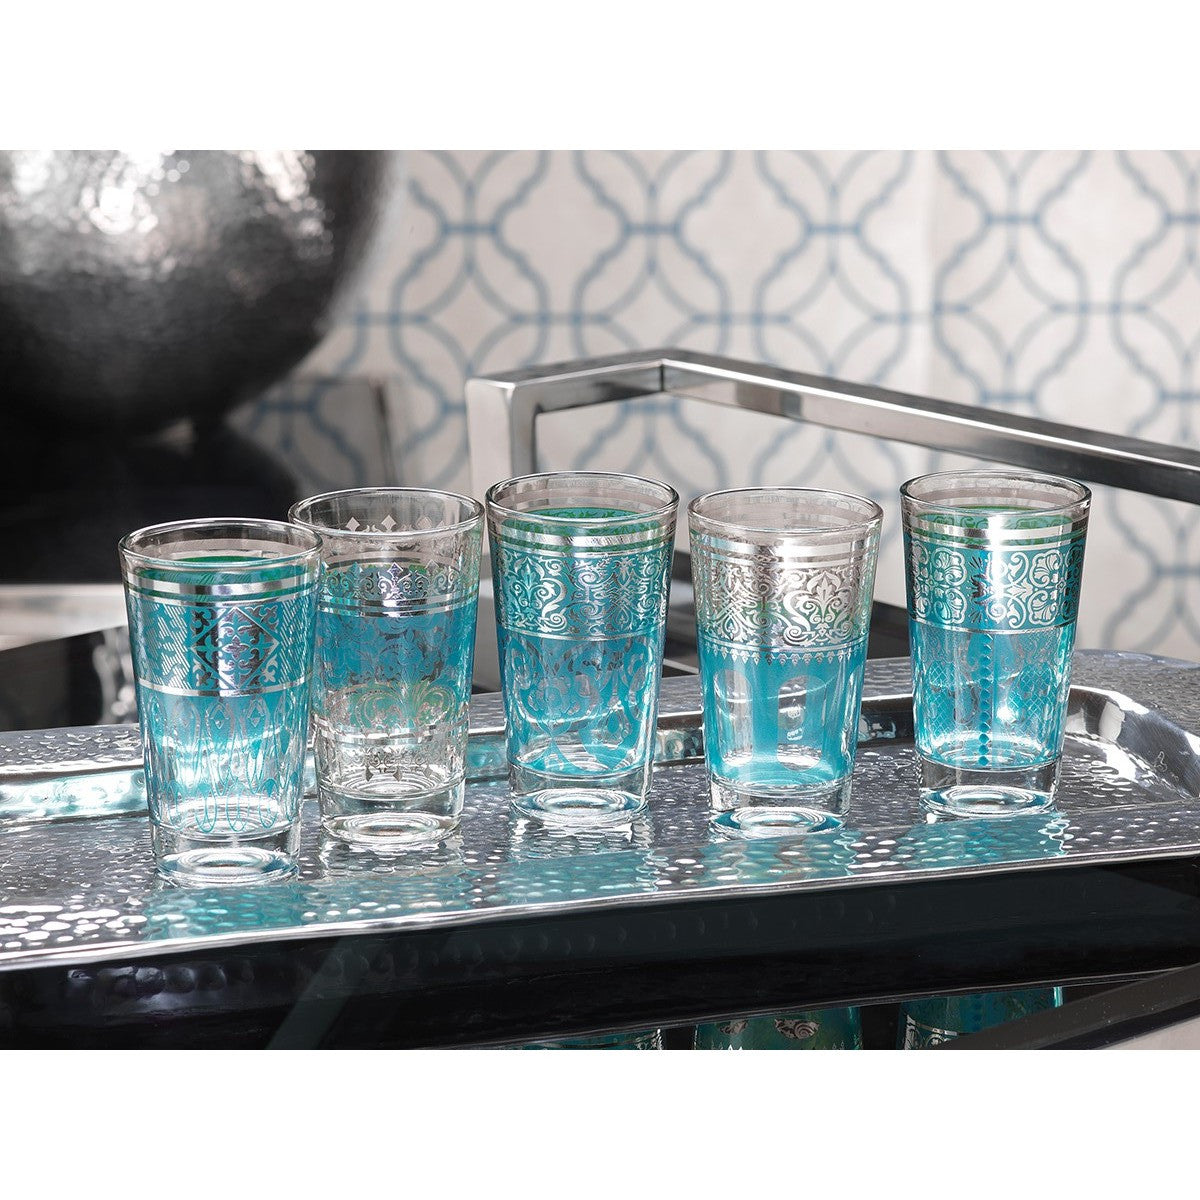 Casablanca Glass Tealight Holders - Blue - Set of 12 - CARLYLE AVENUE